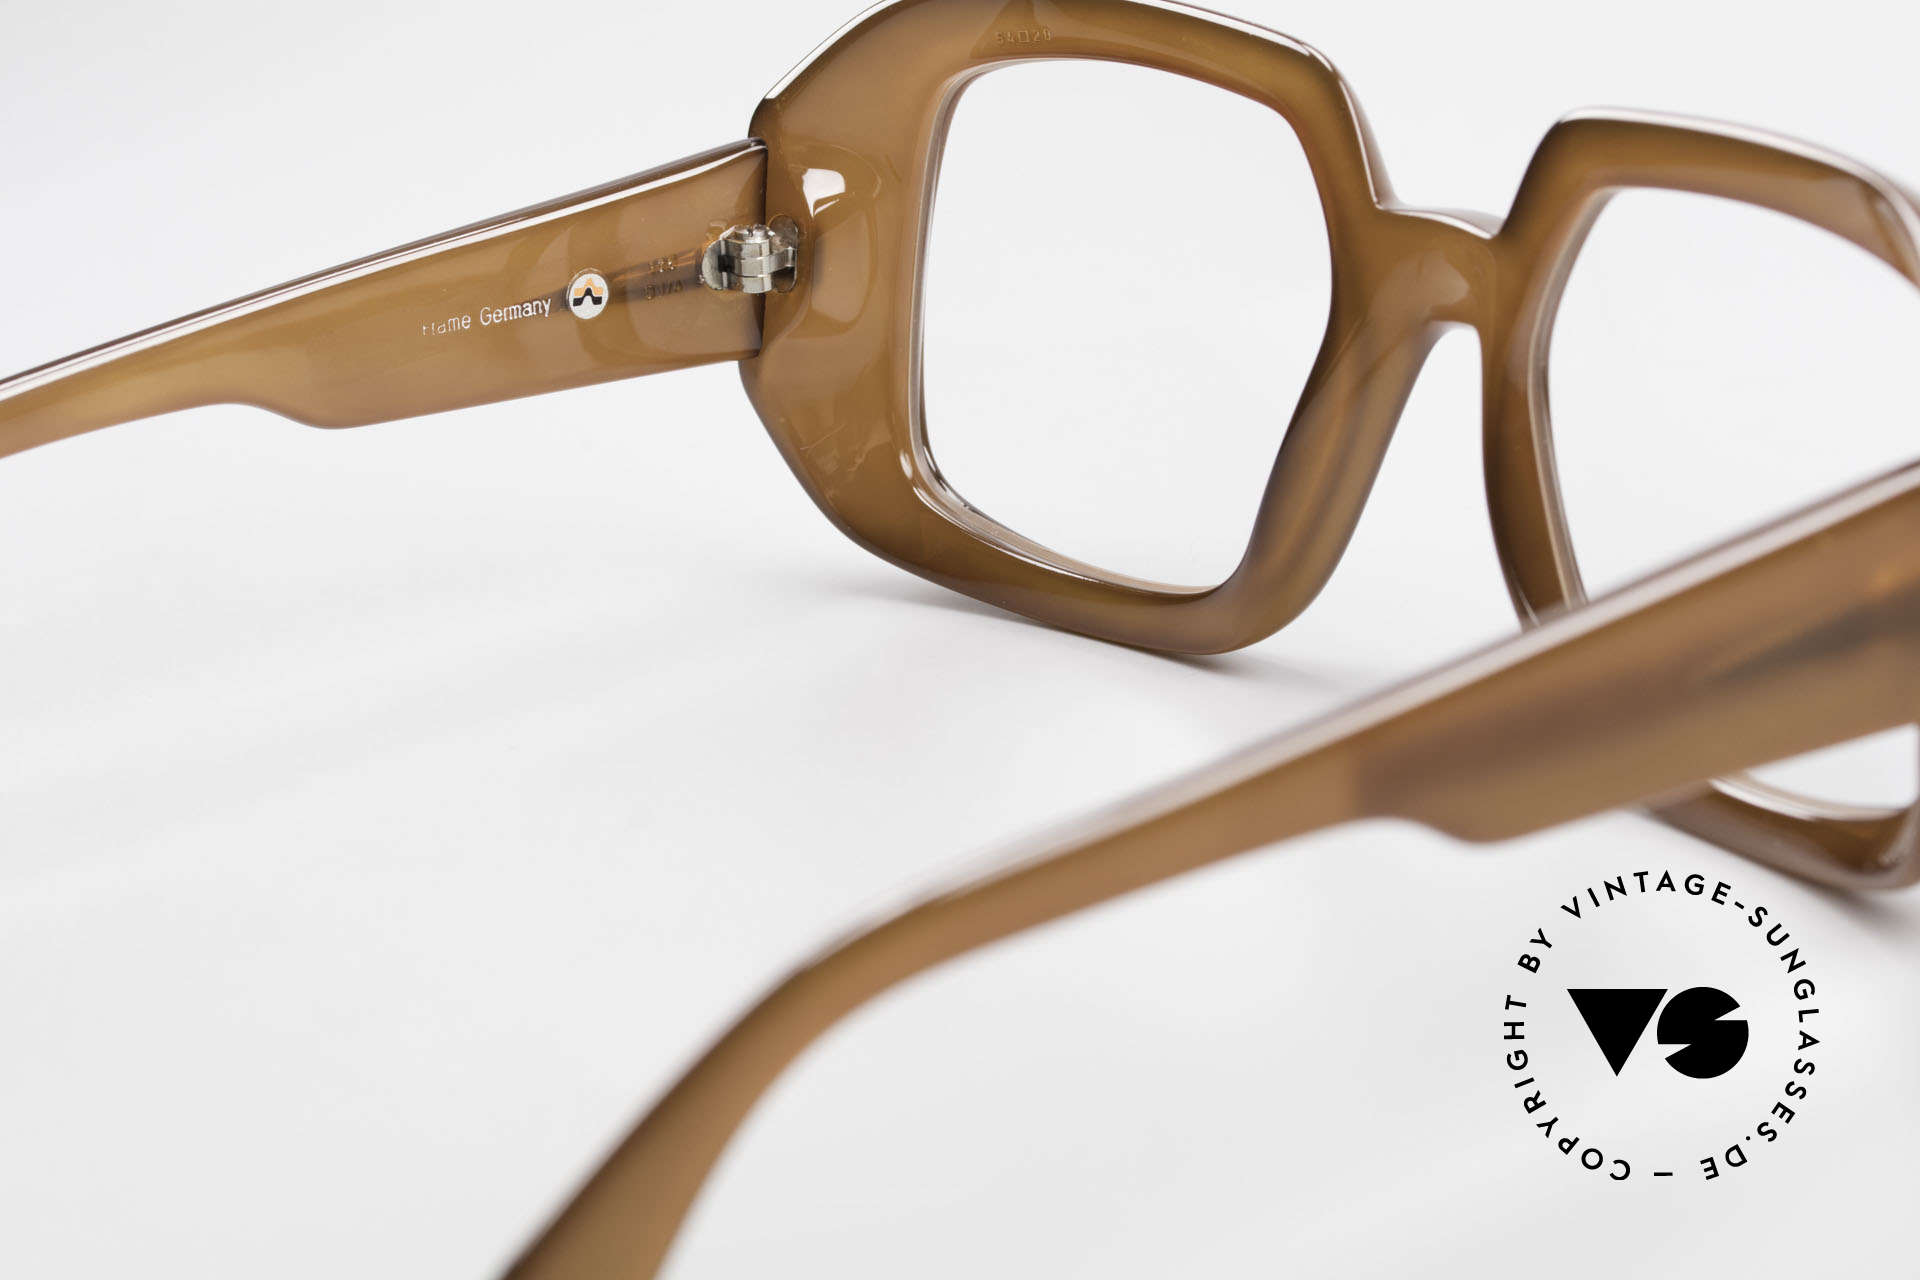 ViennaLine Royal 1601 Goliath Monster Frame 70's, similar to the Ultra GOLIATH glasses (R. de Niro, Casino), Made for Men